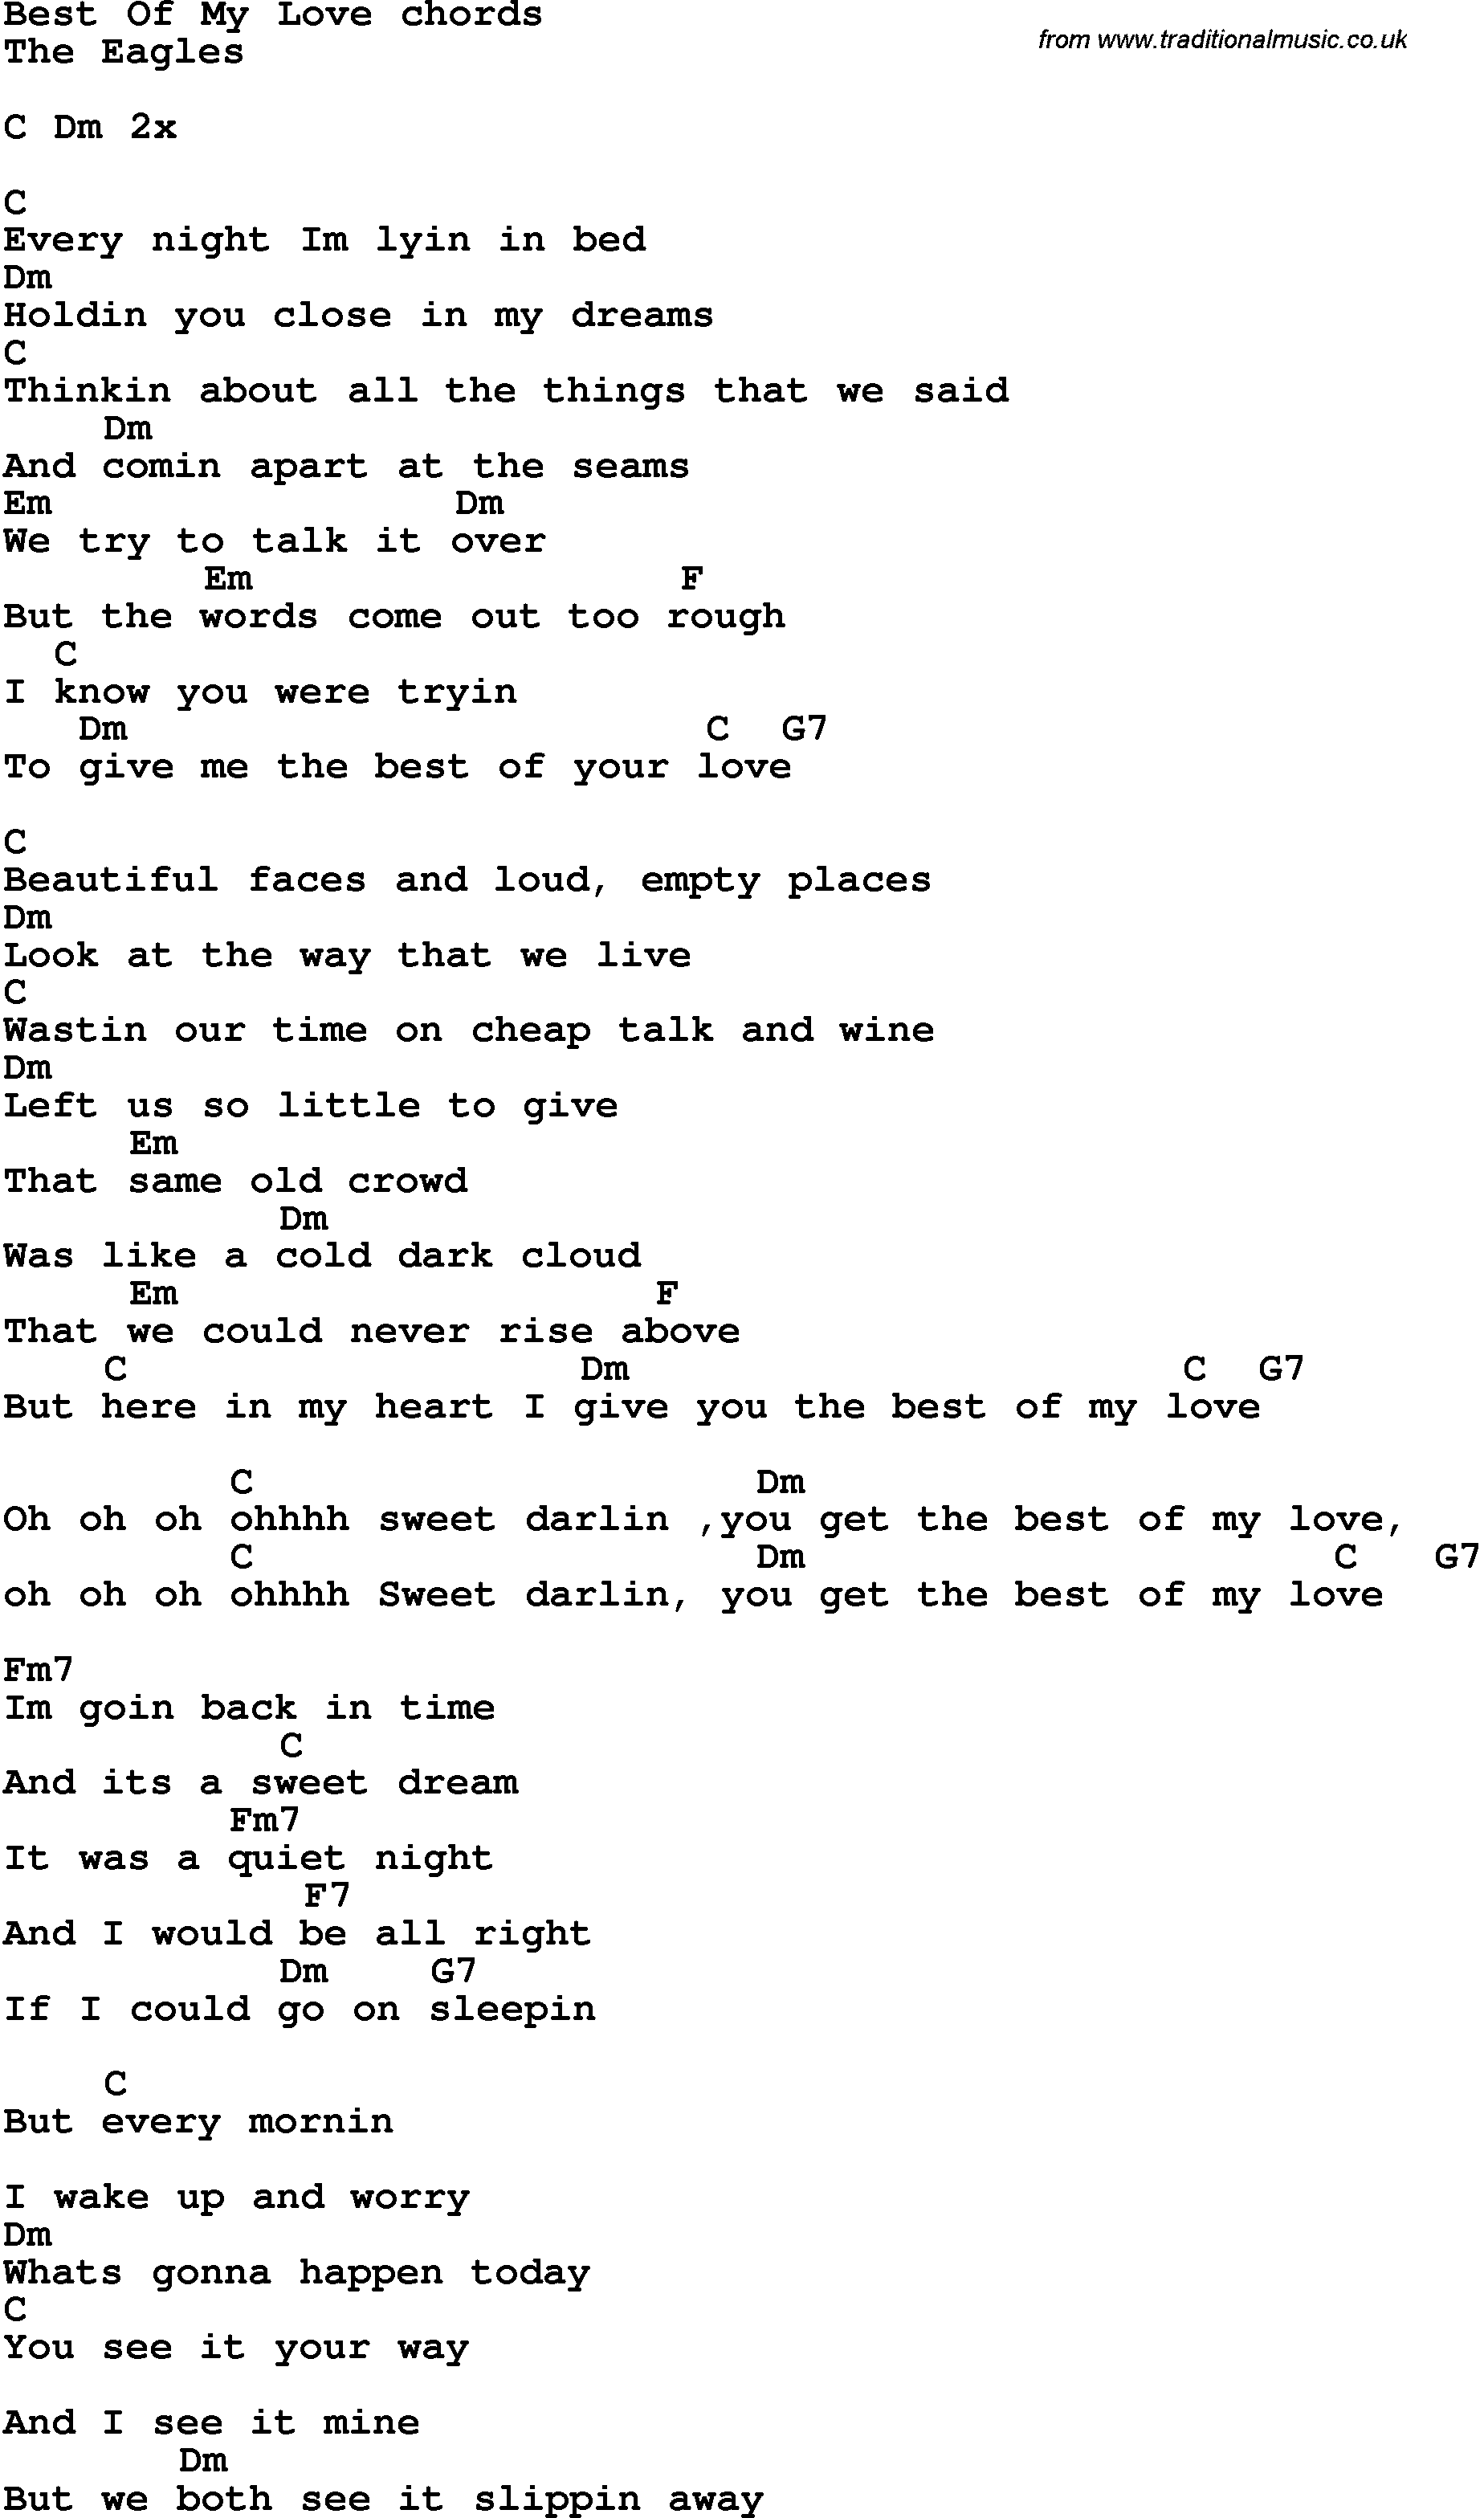 Best song lyrics download full song as pdf file for printing rock and pop song lyrics with chords for best of my love hexwebz Images